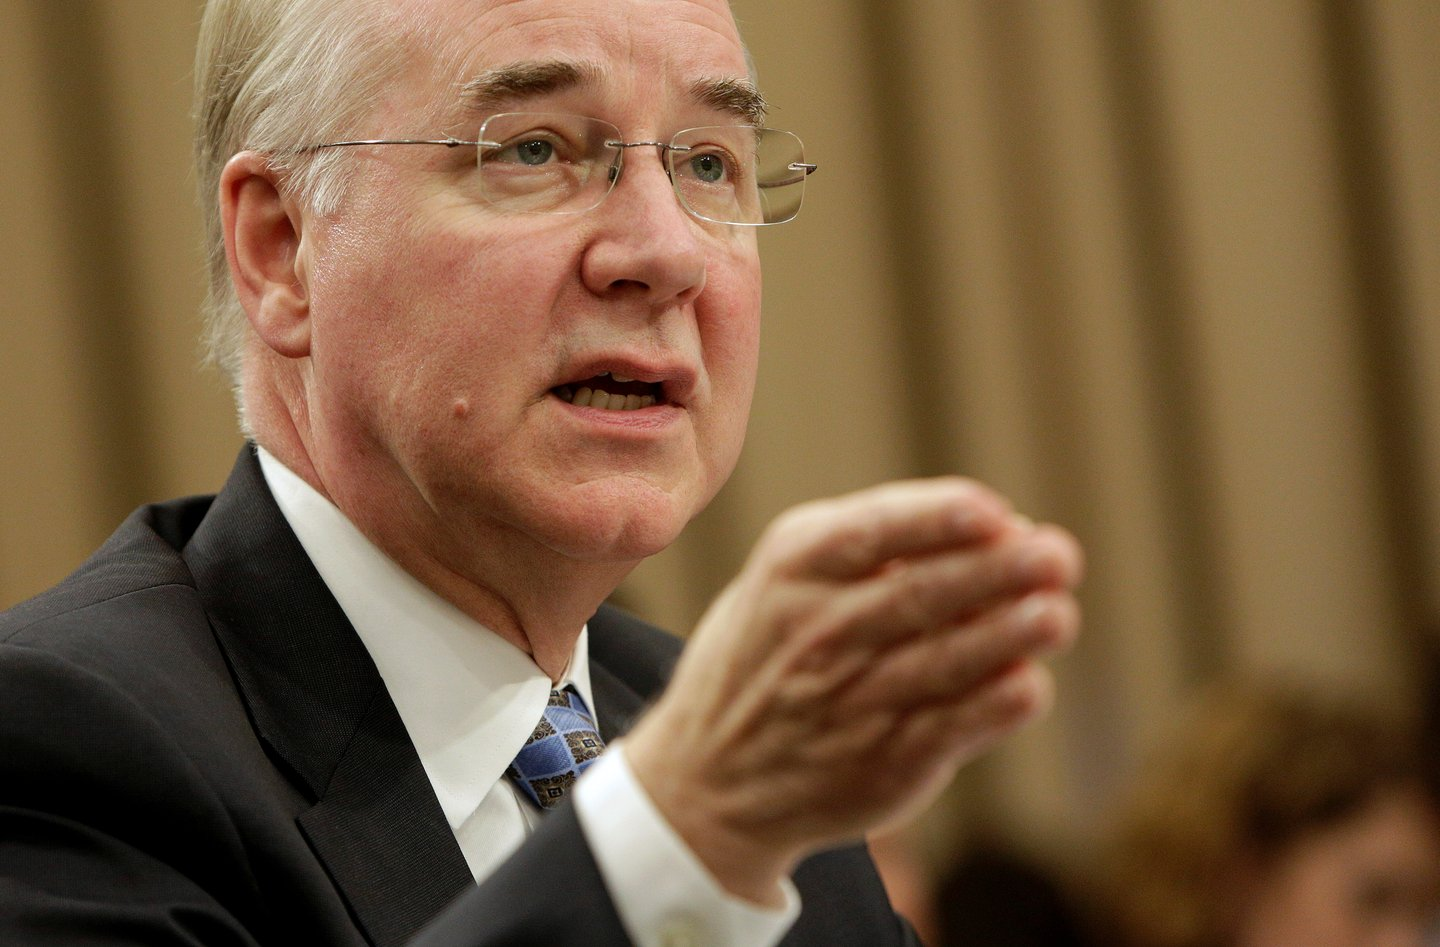 Secretary of Health and Human Services Tom Price